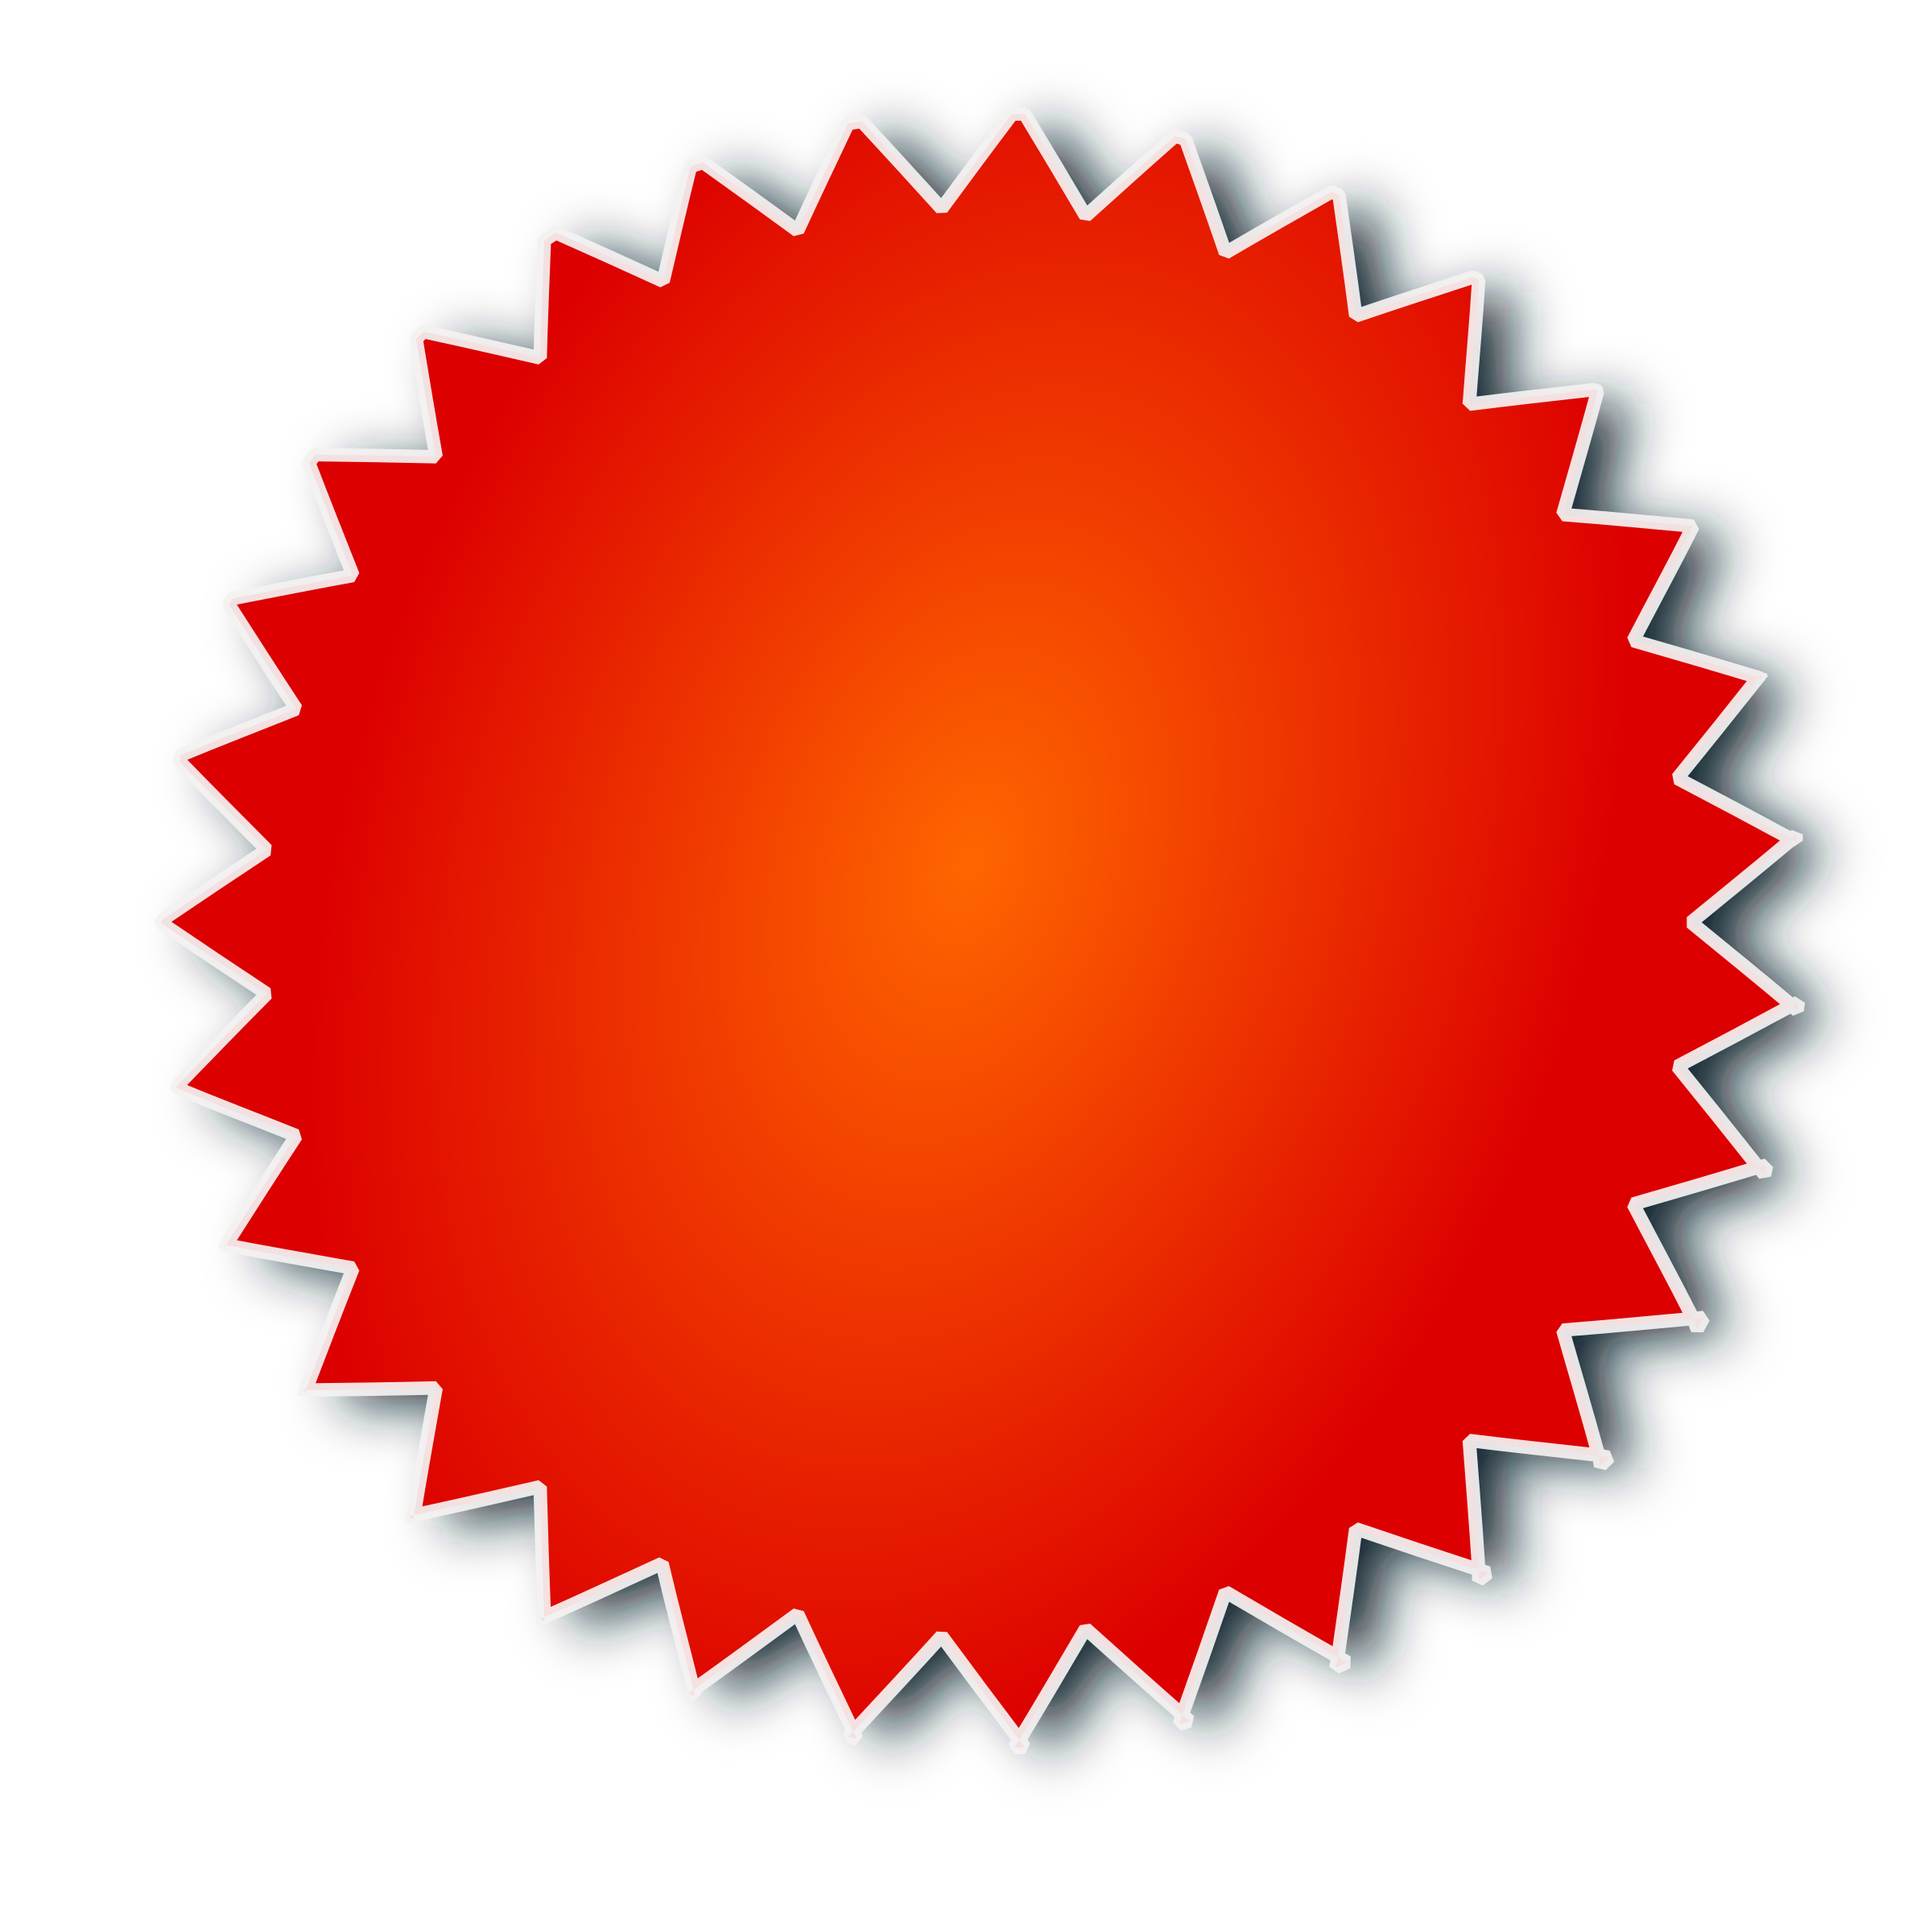 Red tag png. Price transparent images pluspng